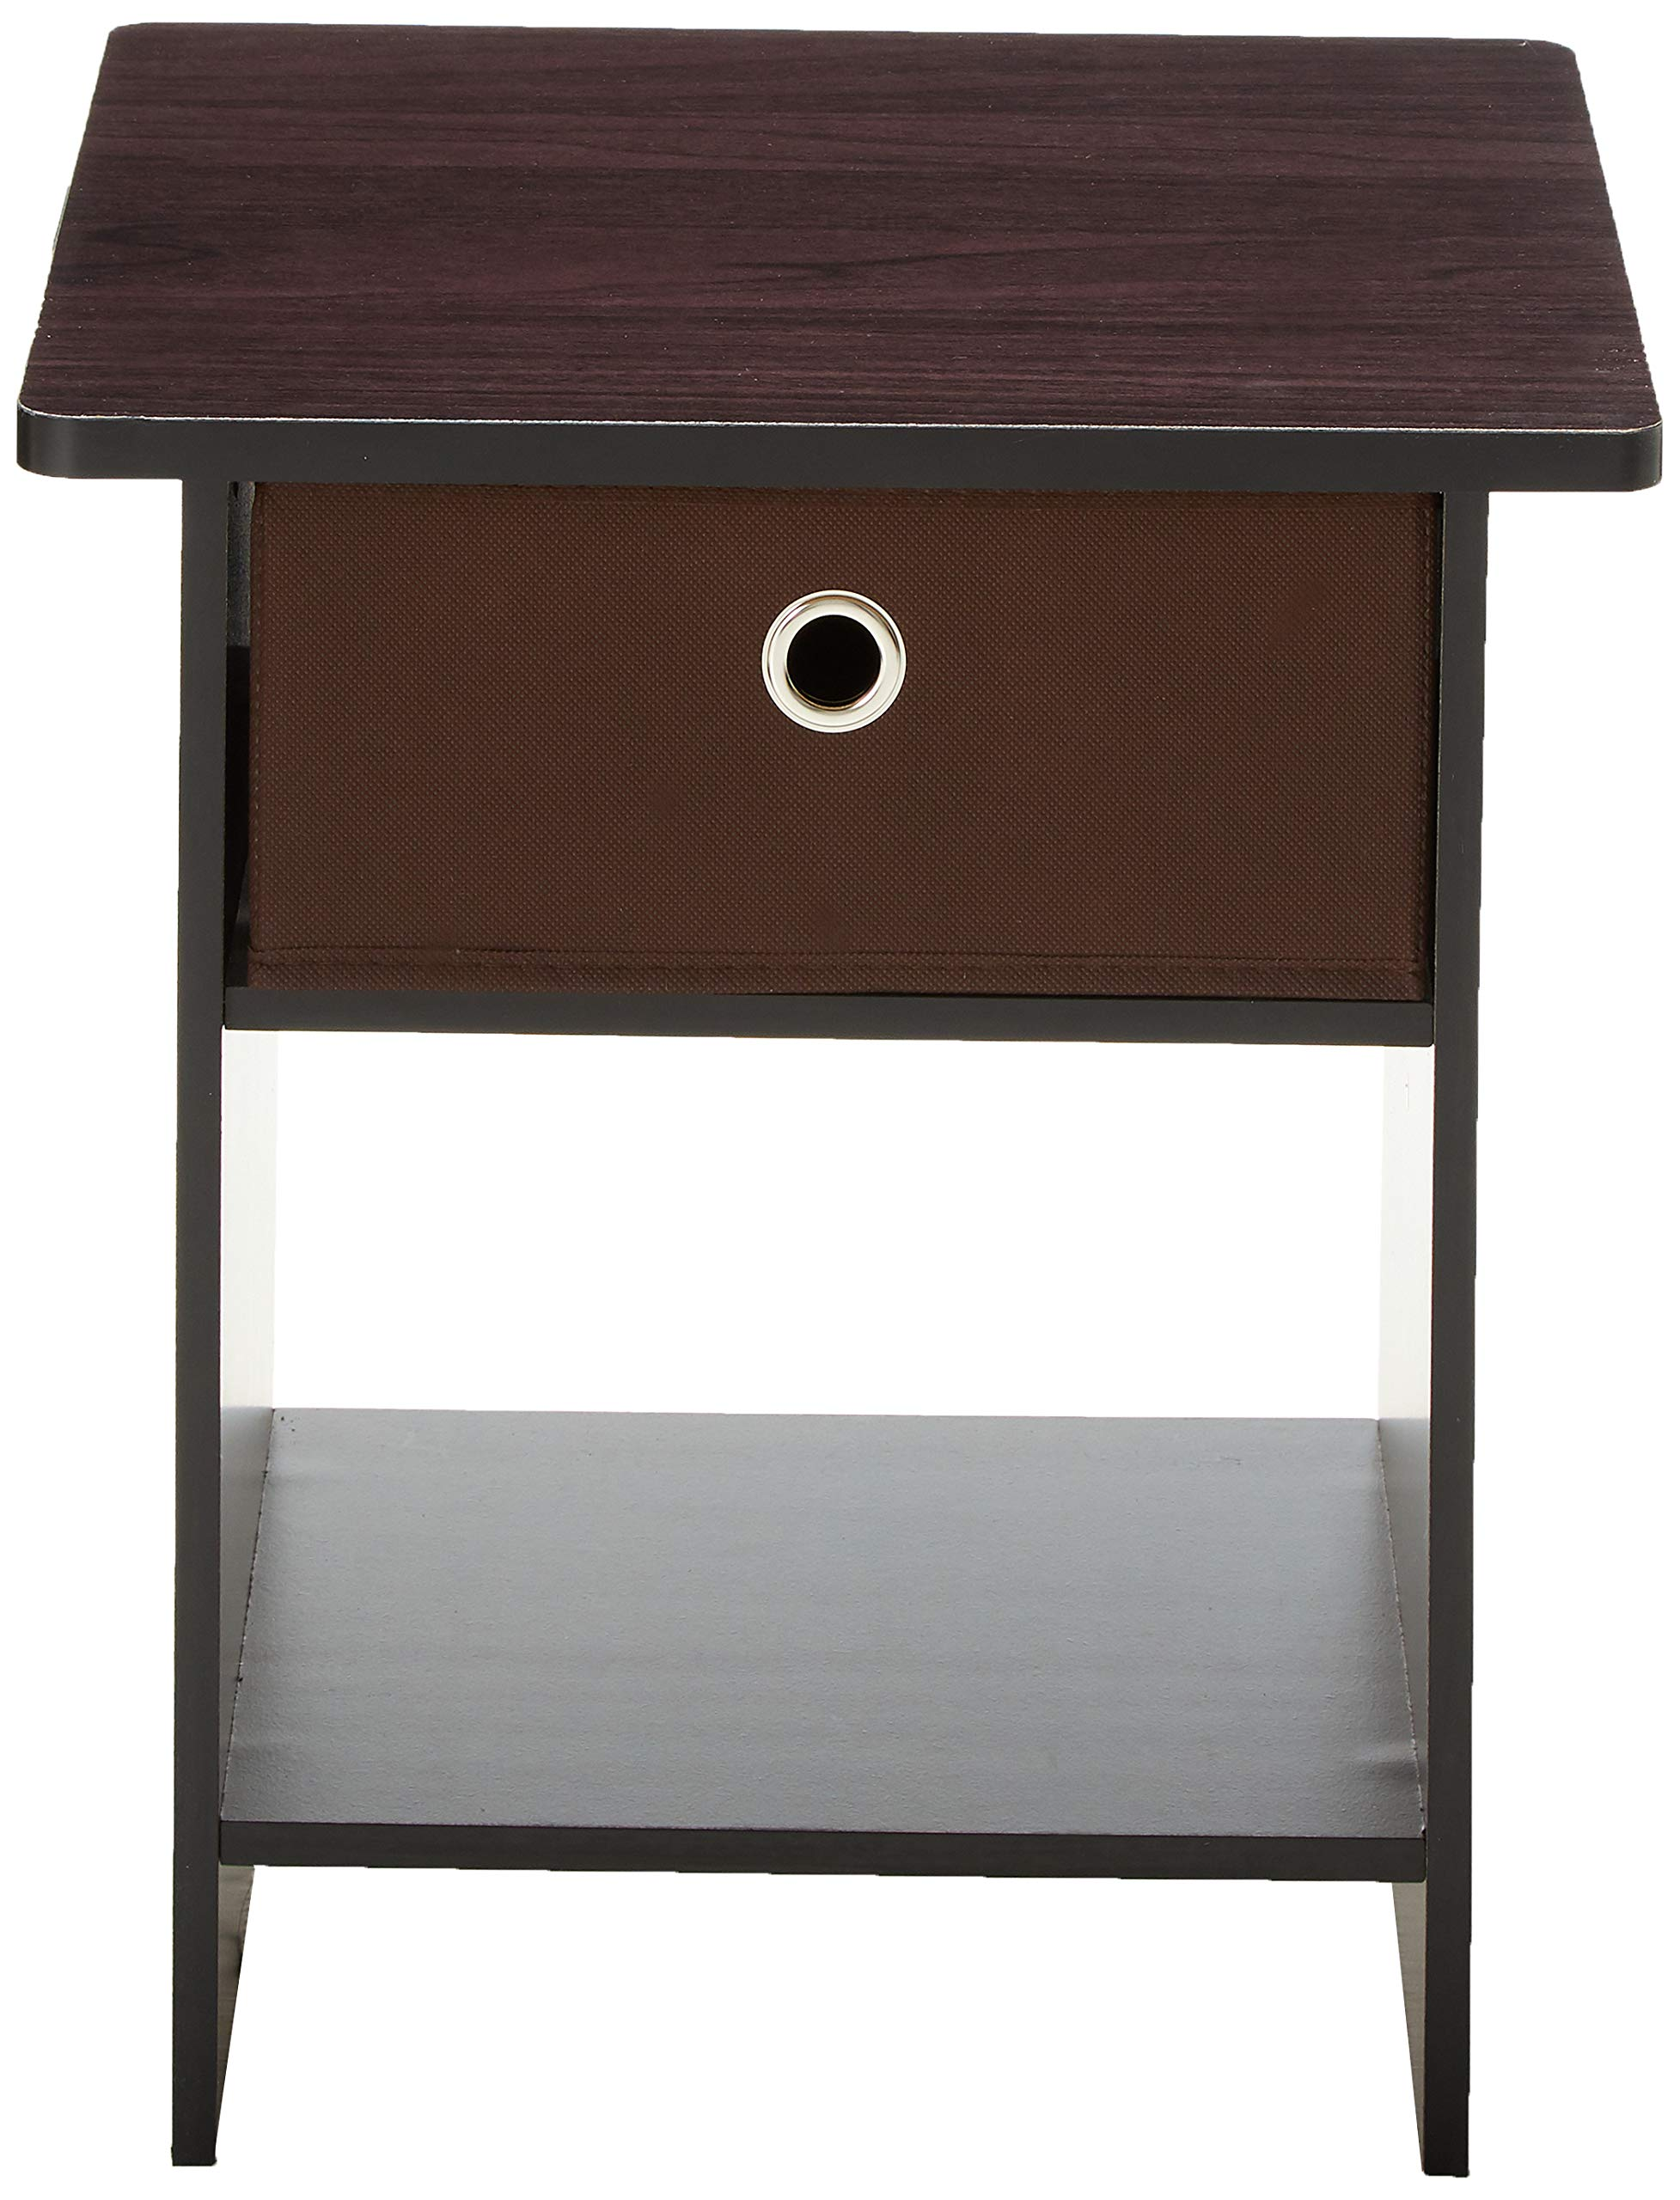 FURINNO Dario End Table/Night Stand Storage Shelf, 1-Pack, Americano/Medium Brown